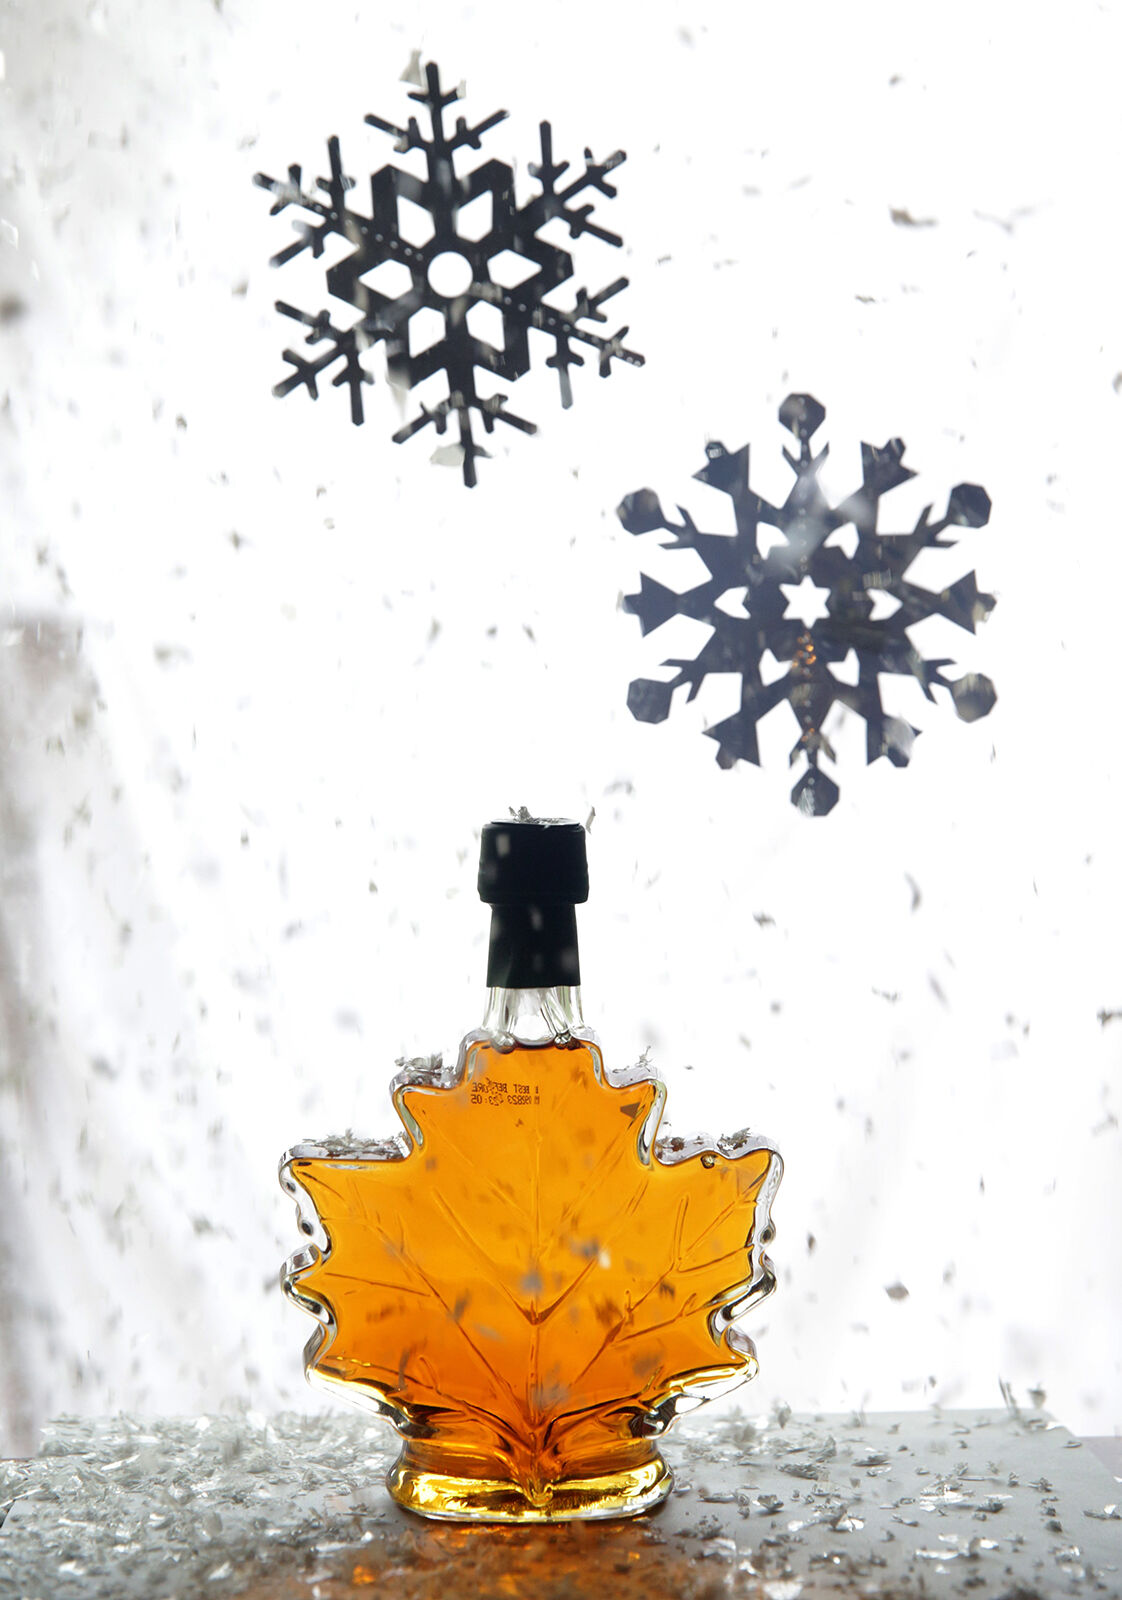 MAPLE SYRUP: It's not just for pancakes